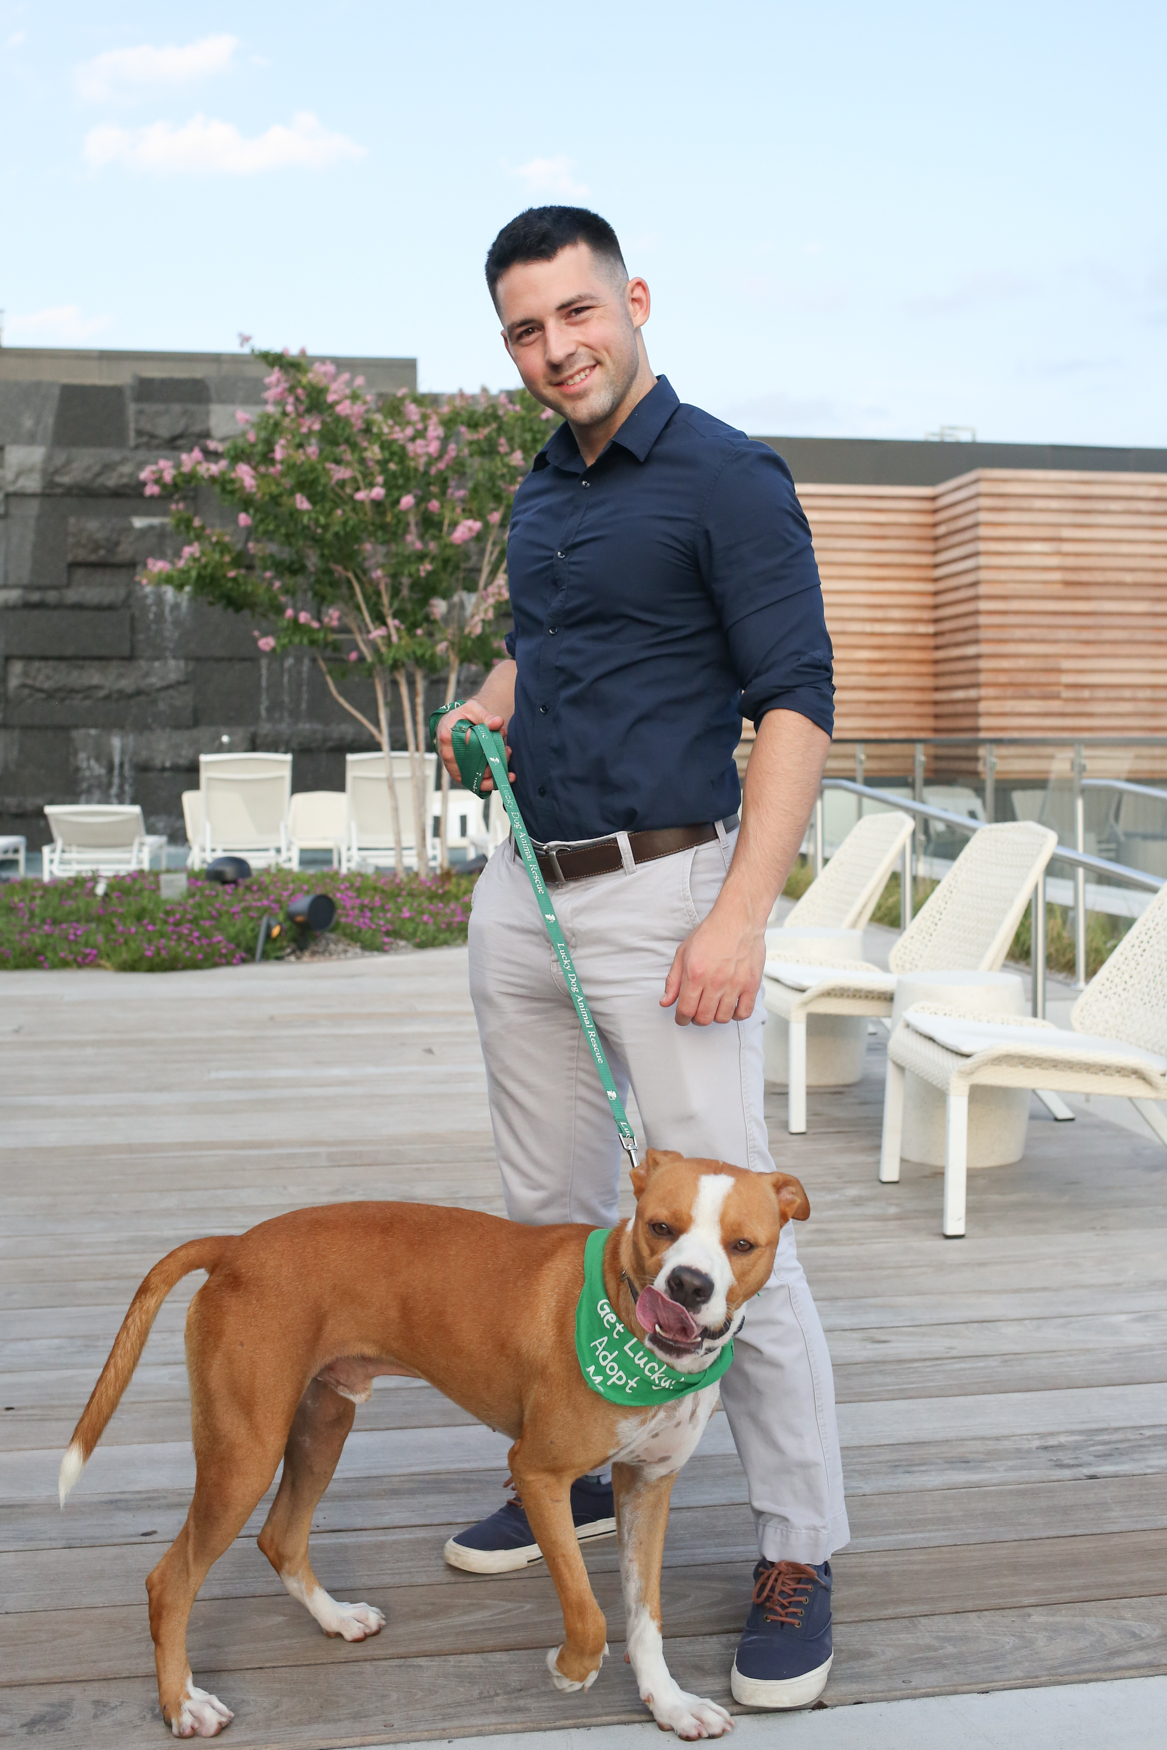 Meet Presley and Andrew, a 2-year-old Boxer mix and a 27-year-old human respectively. Photo location: 880 P apartments (Image: Amanda Andrade-Rhoades/ DC Refined)